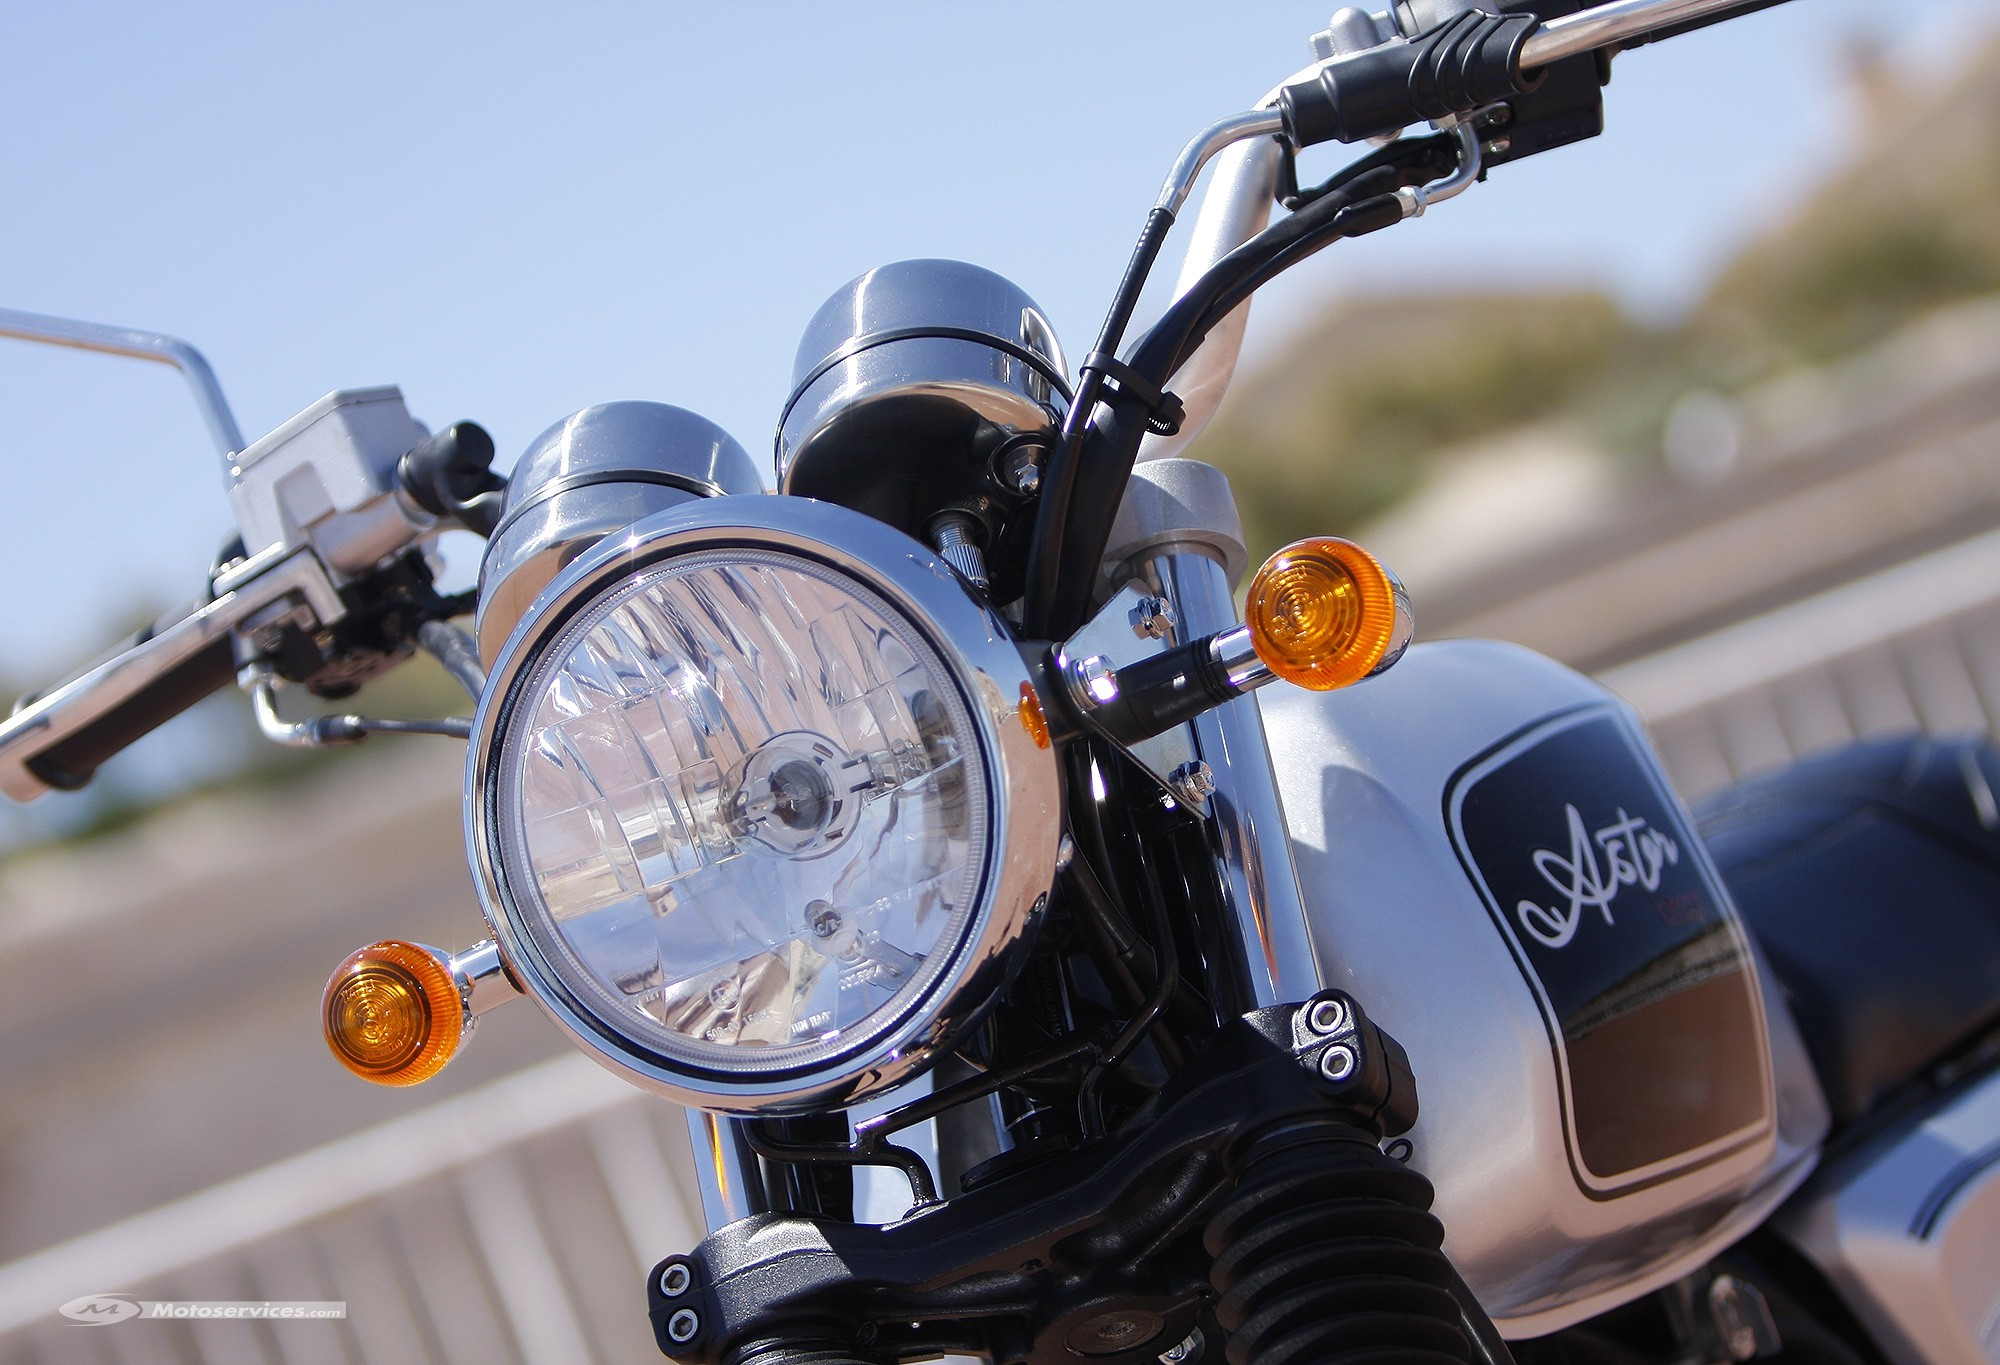 Orcal Astor 125 Is The 60s Jewel You Ve Been Looking For Autoevolution